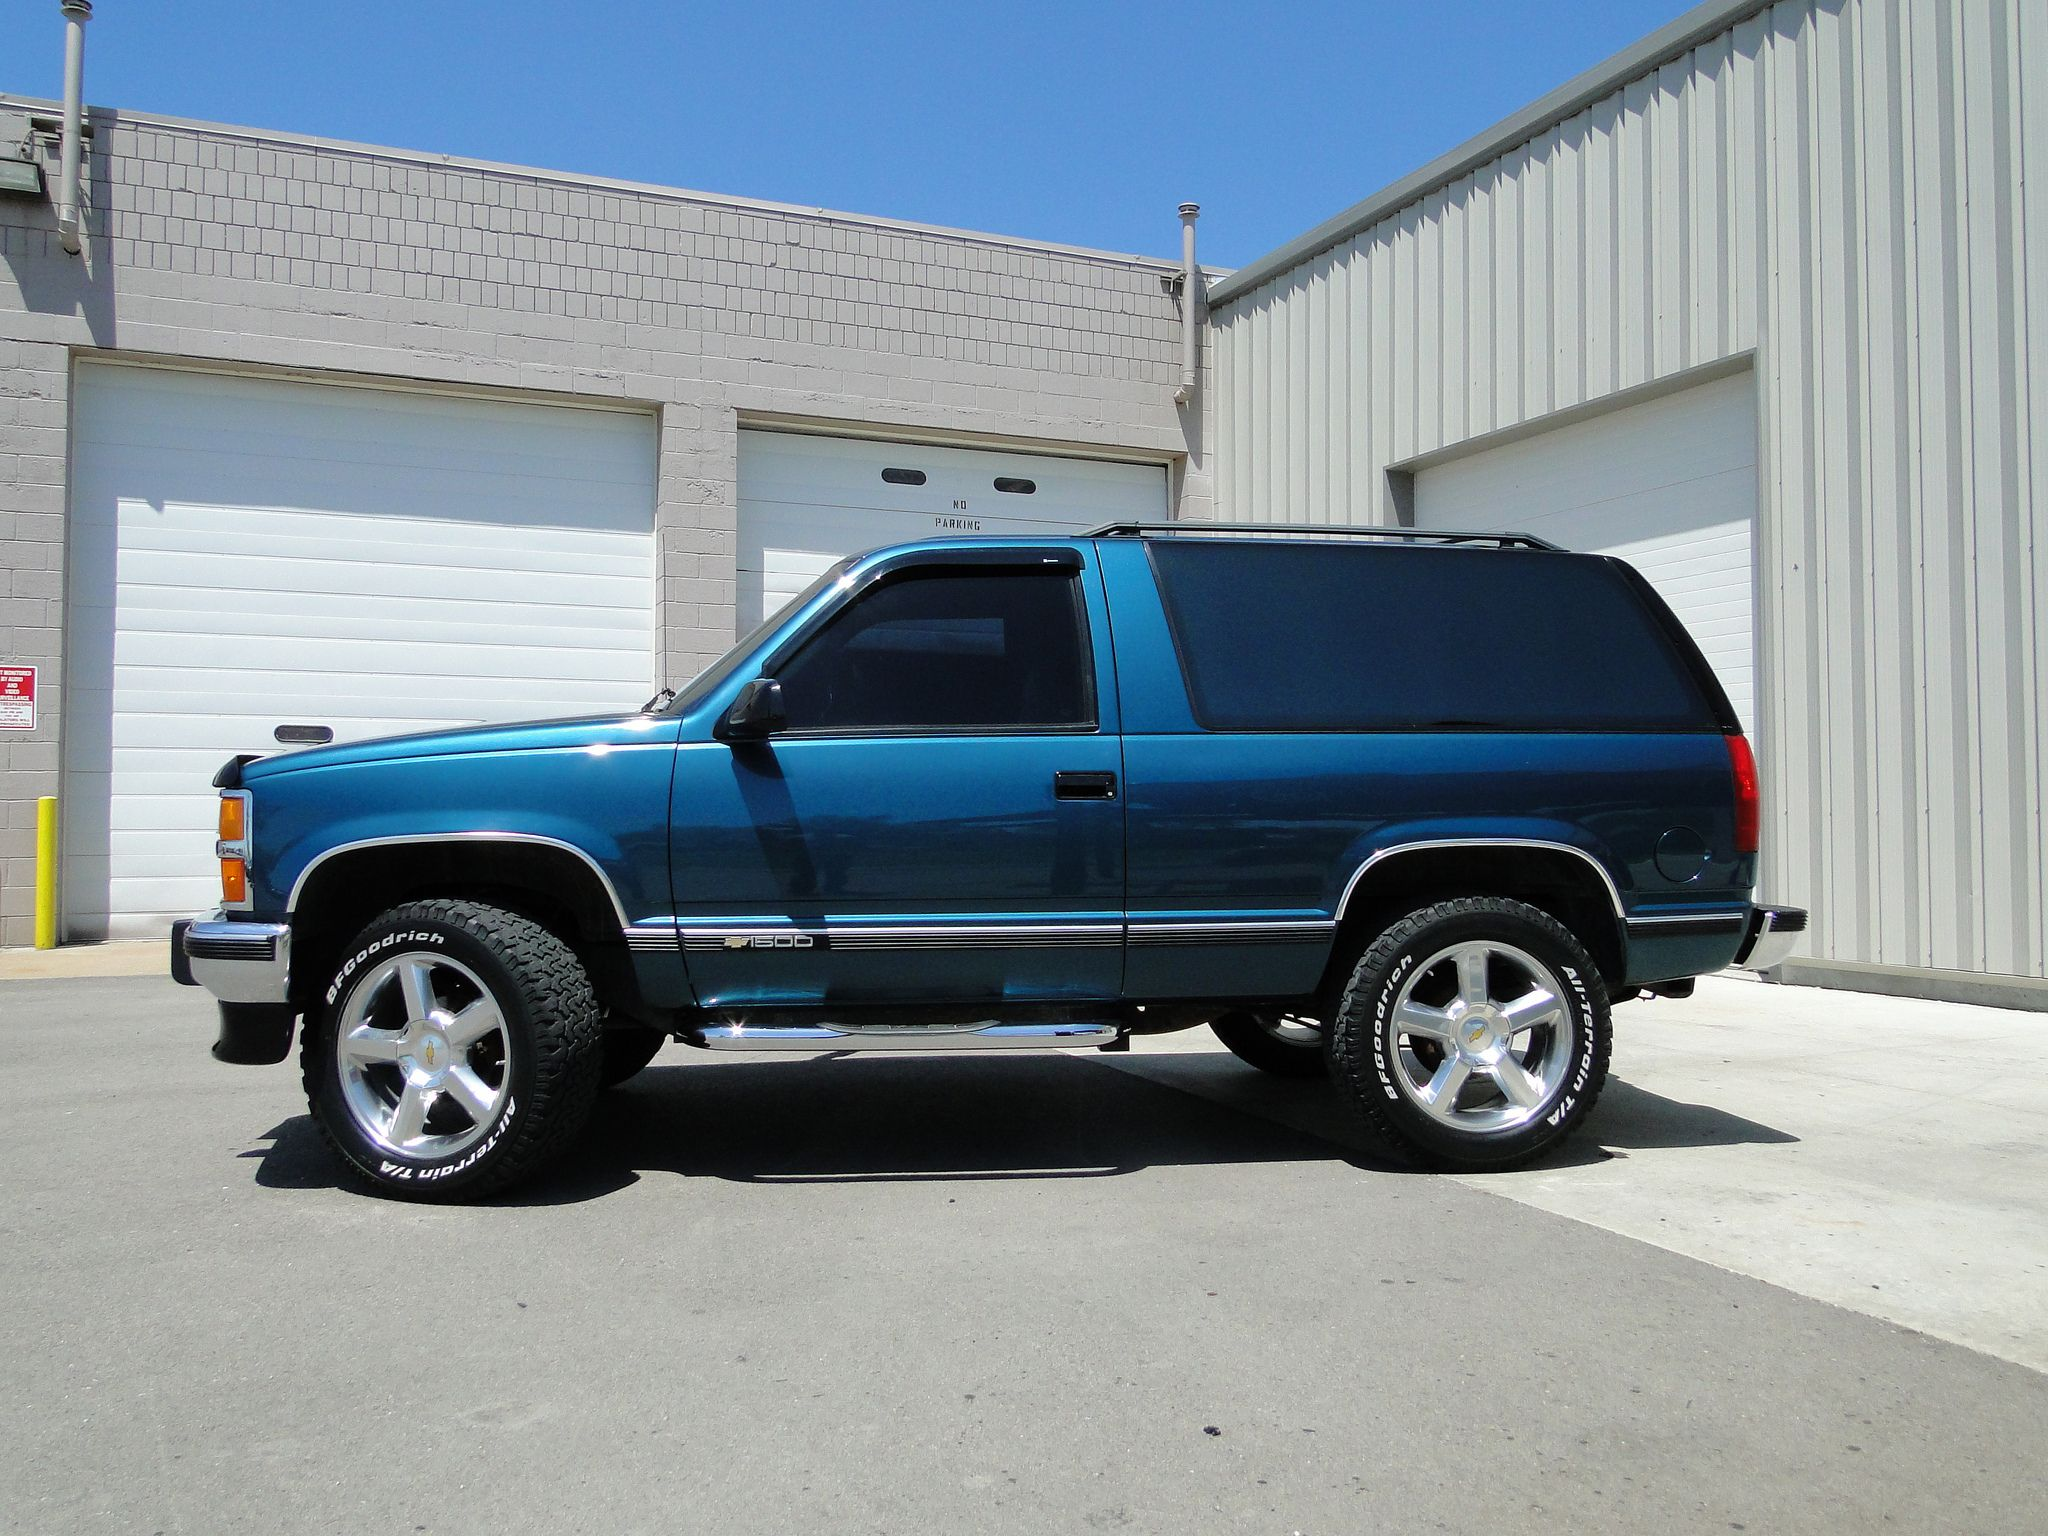 1994 Chevy Blazer 2 Door 4x4 Chevy Tahoe Chevy Trucks Chevy S10